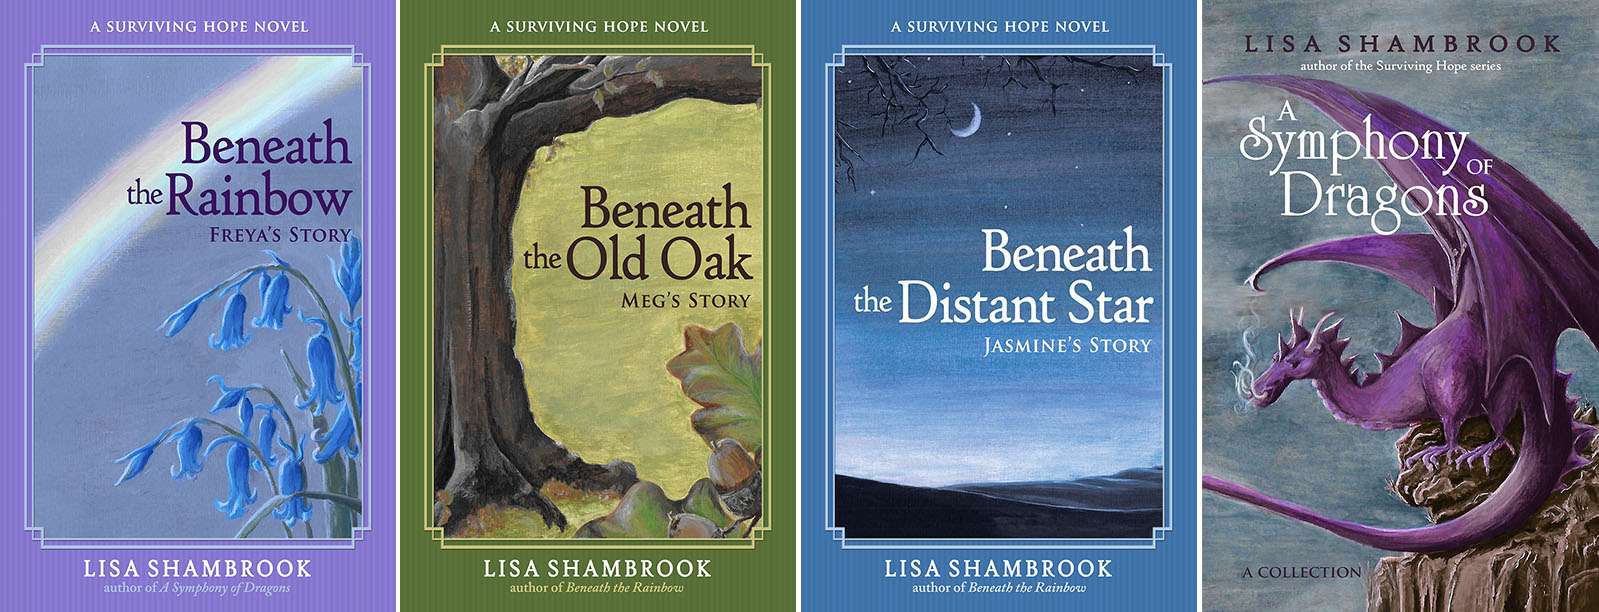 Surviving Hope novels and A Symphony of Dragons by Lisa Shambrook